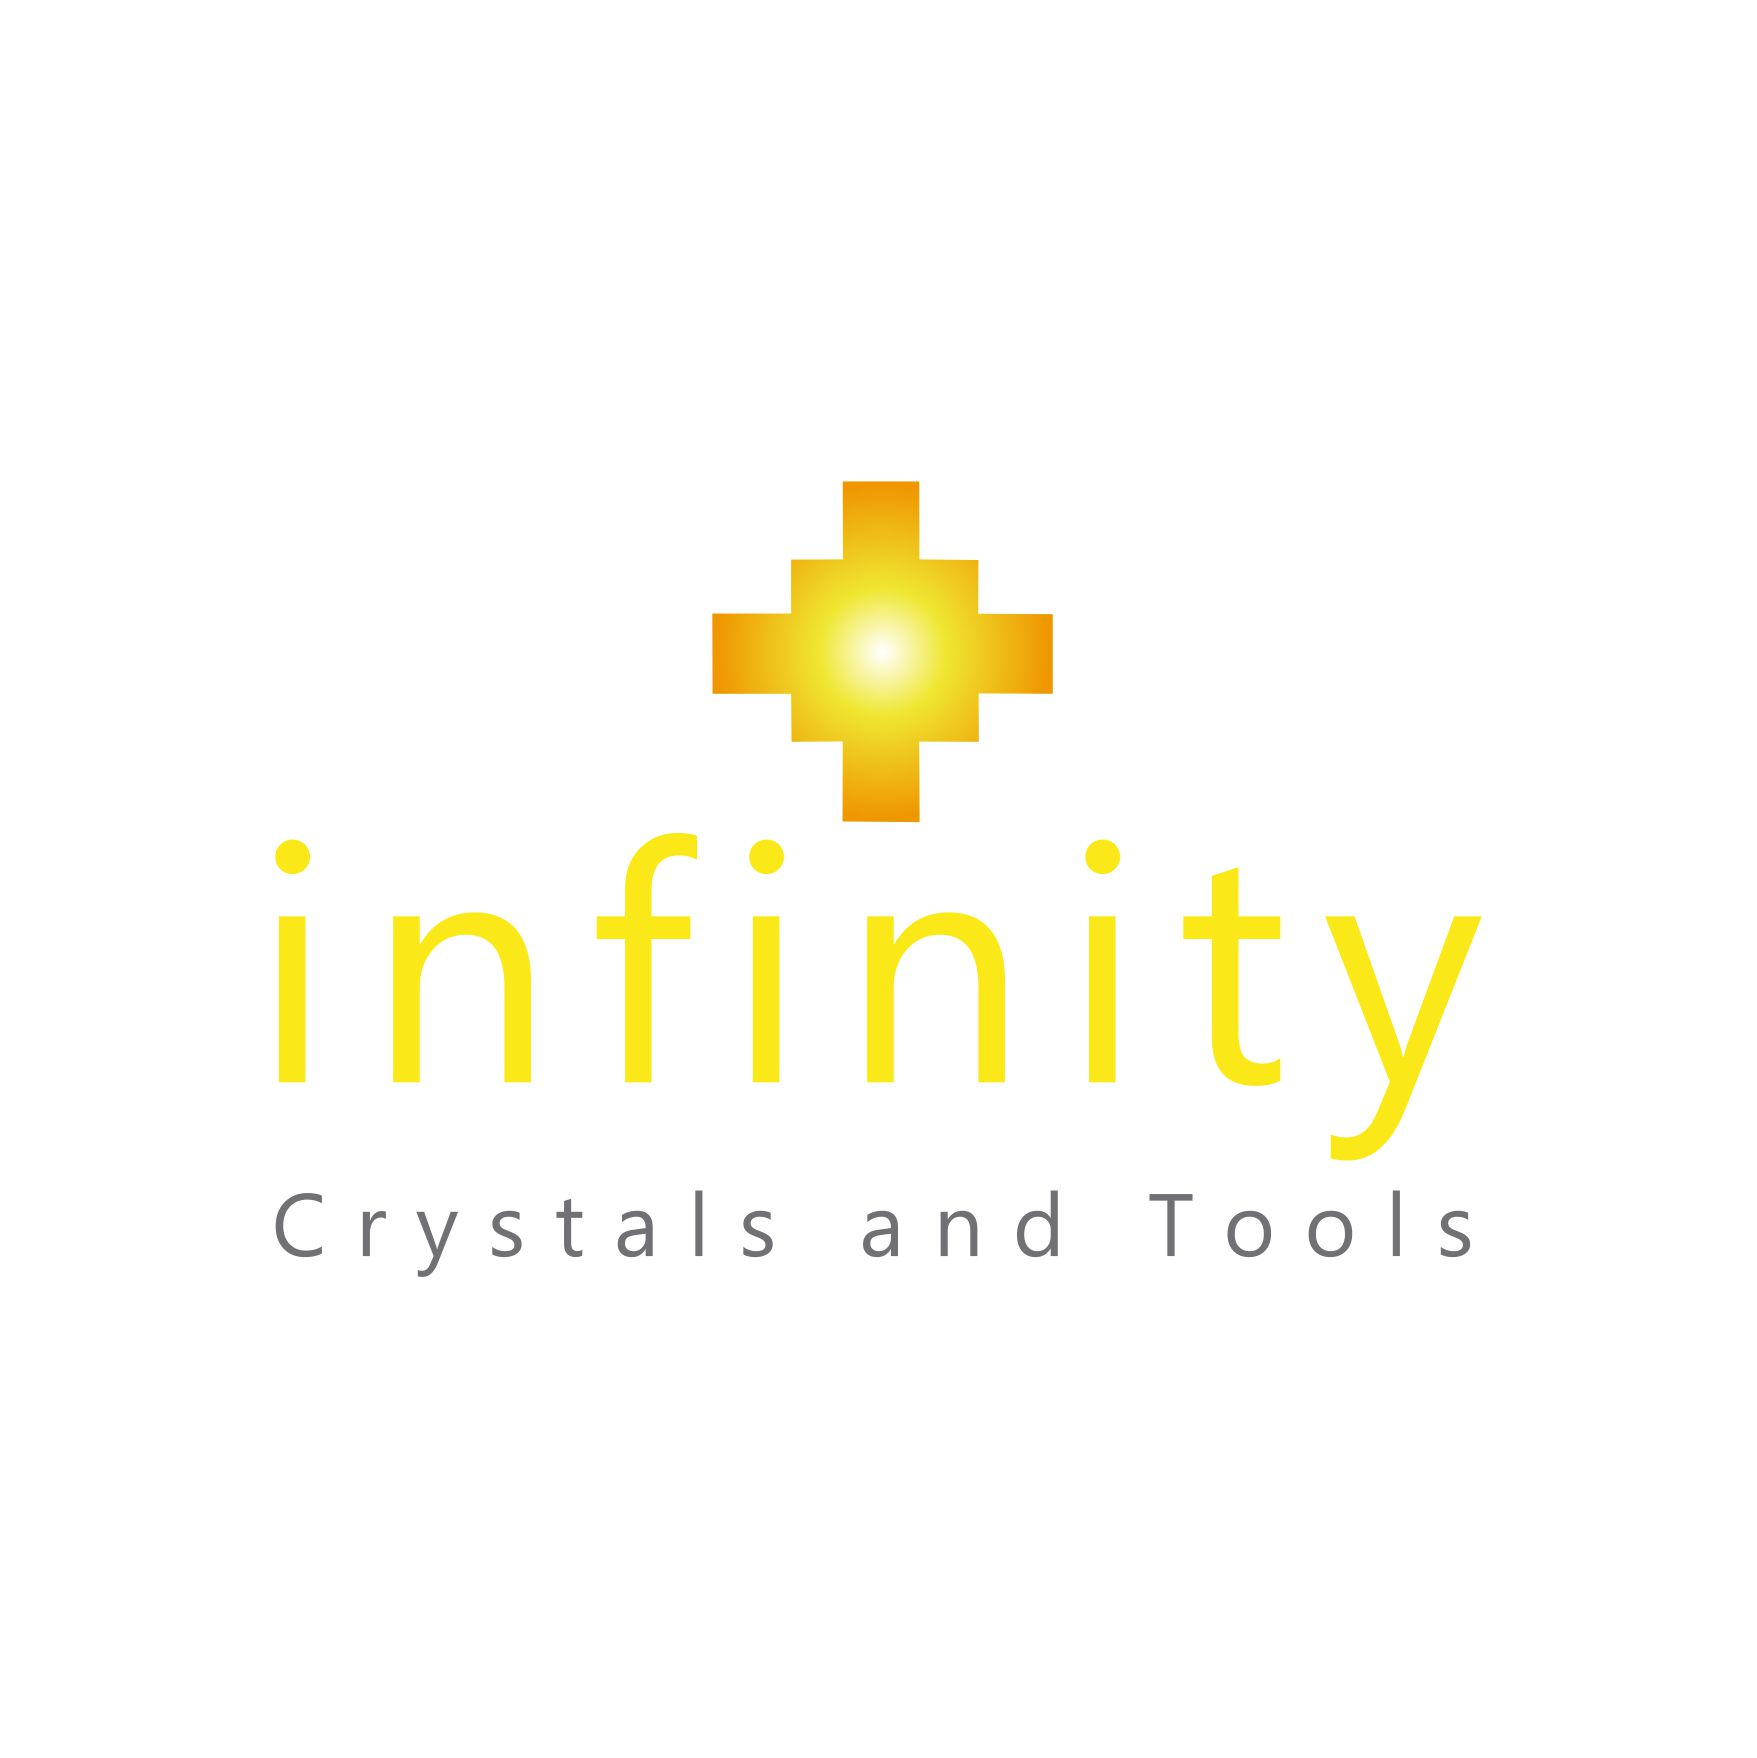 Infinity Crystals and Tools